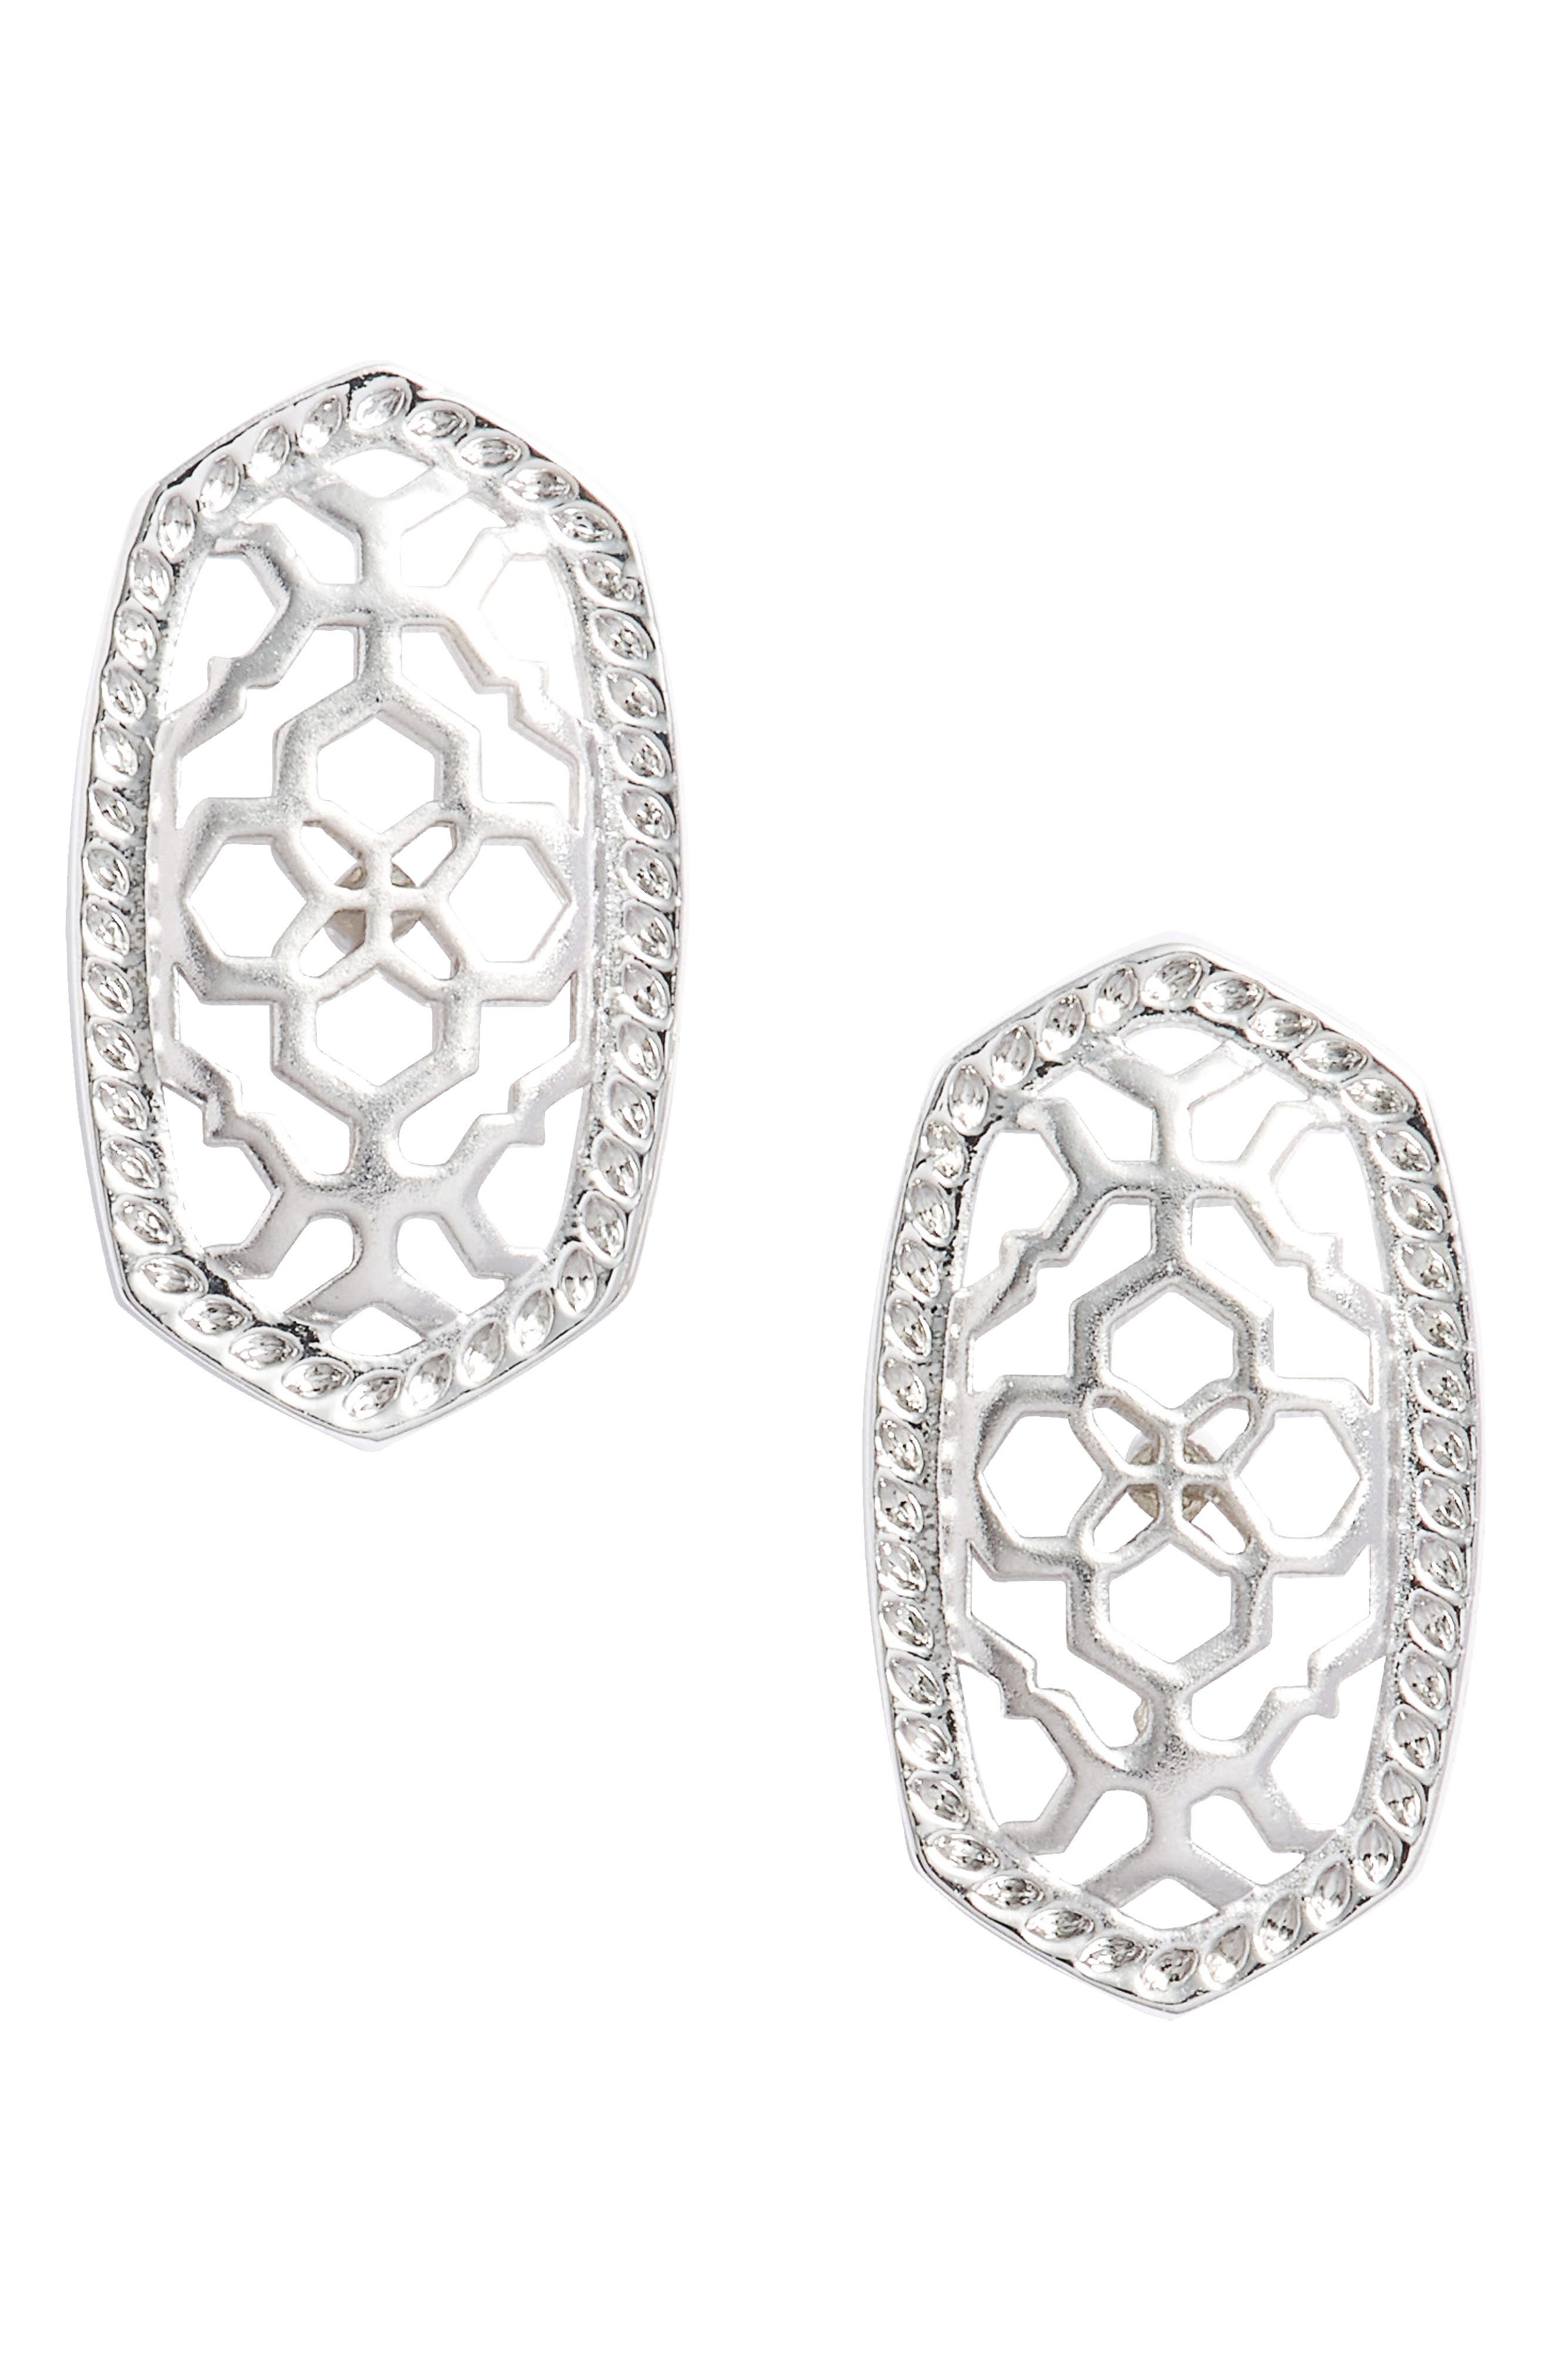 Ellie Oval Stud Earrings,                             Main thumbnail 1, color,                             Silver